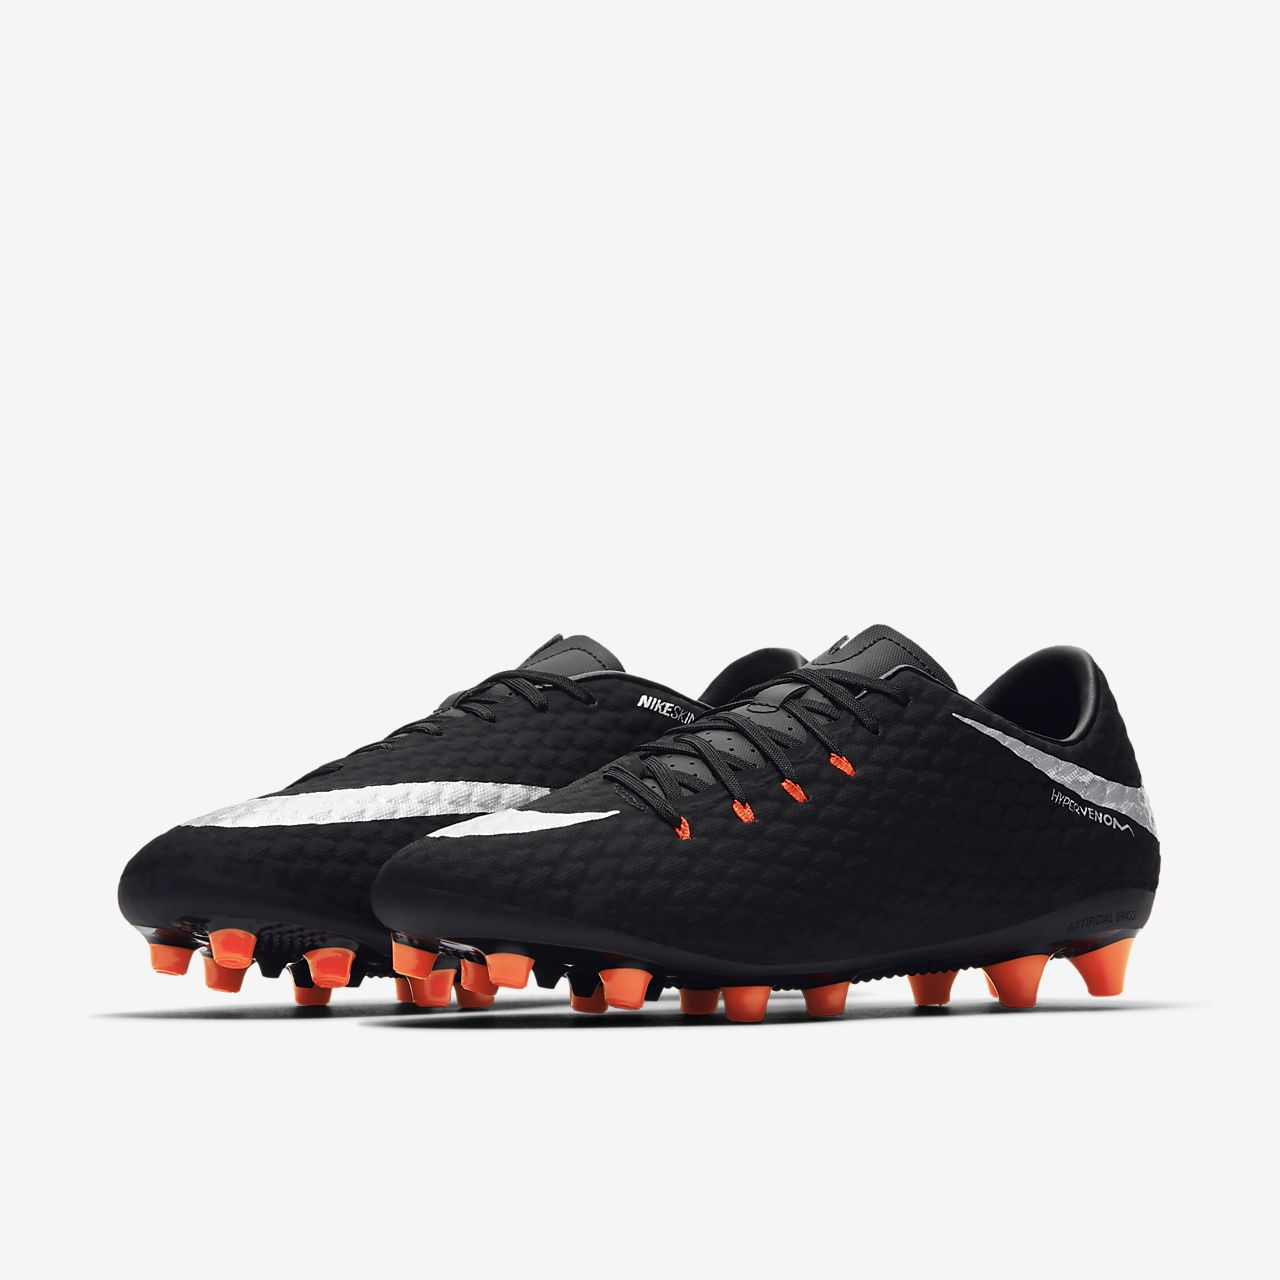 nike hypervenom phelon 3 ag pro artificial grass football boot my. Black Bedroom Furniture Sets. Home Design Ideas